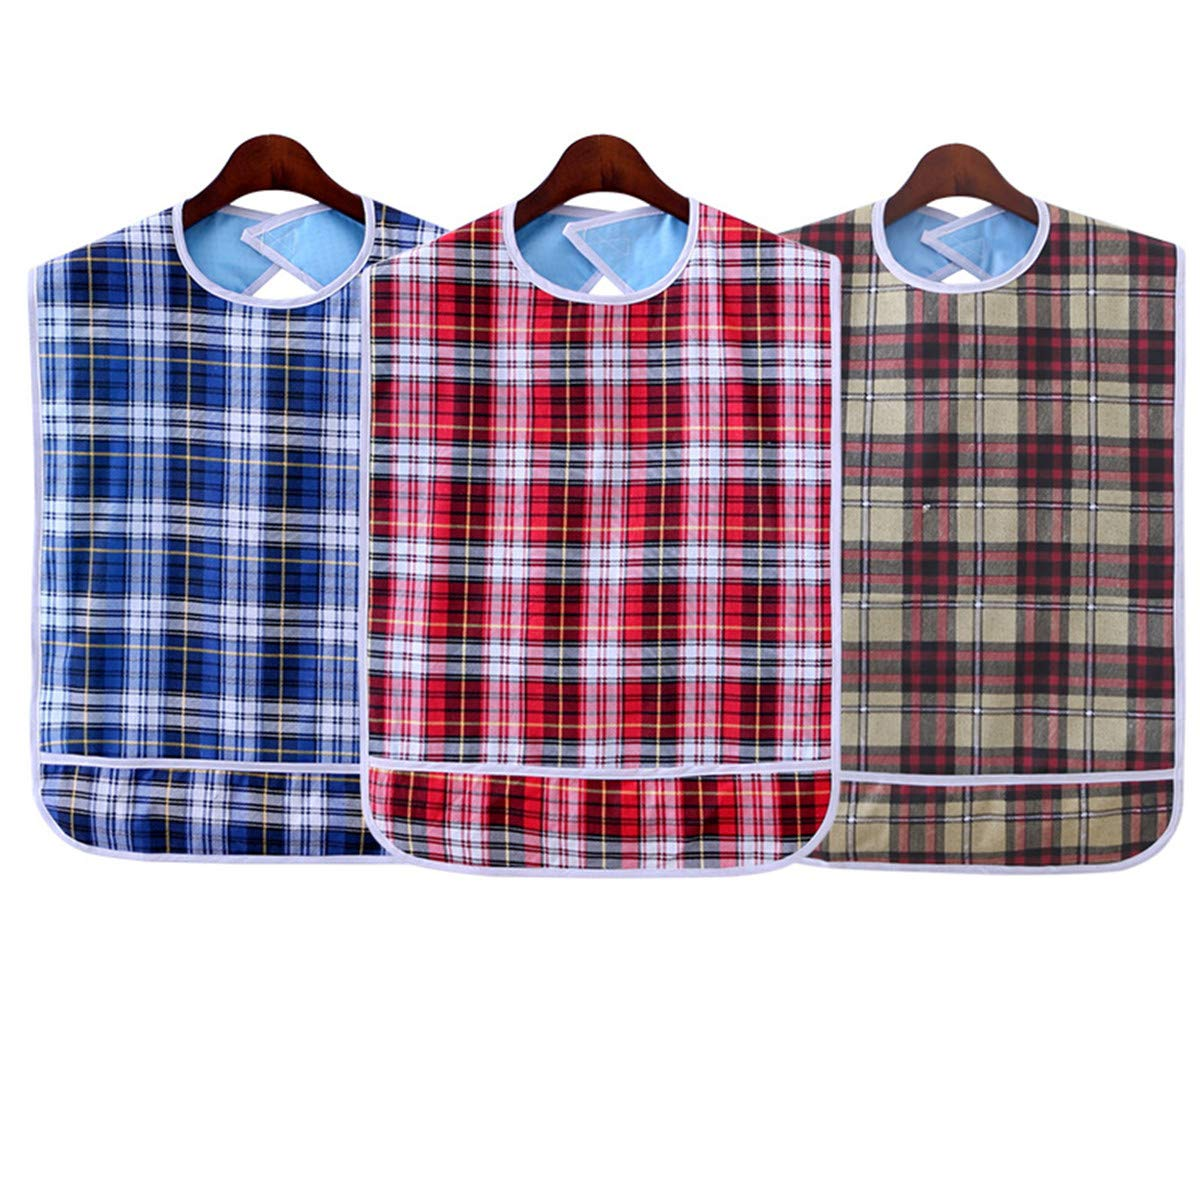 Adult Bib (3 Pack) Washable Reusable Waterproof Clothing Protector with Crumb Catcher for Men and Women 30''